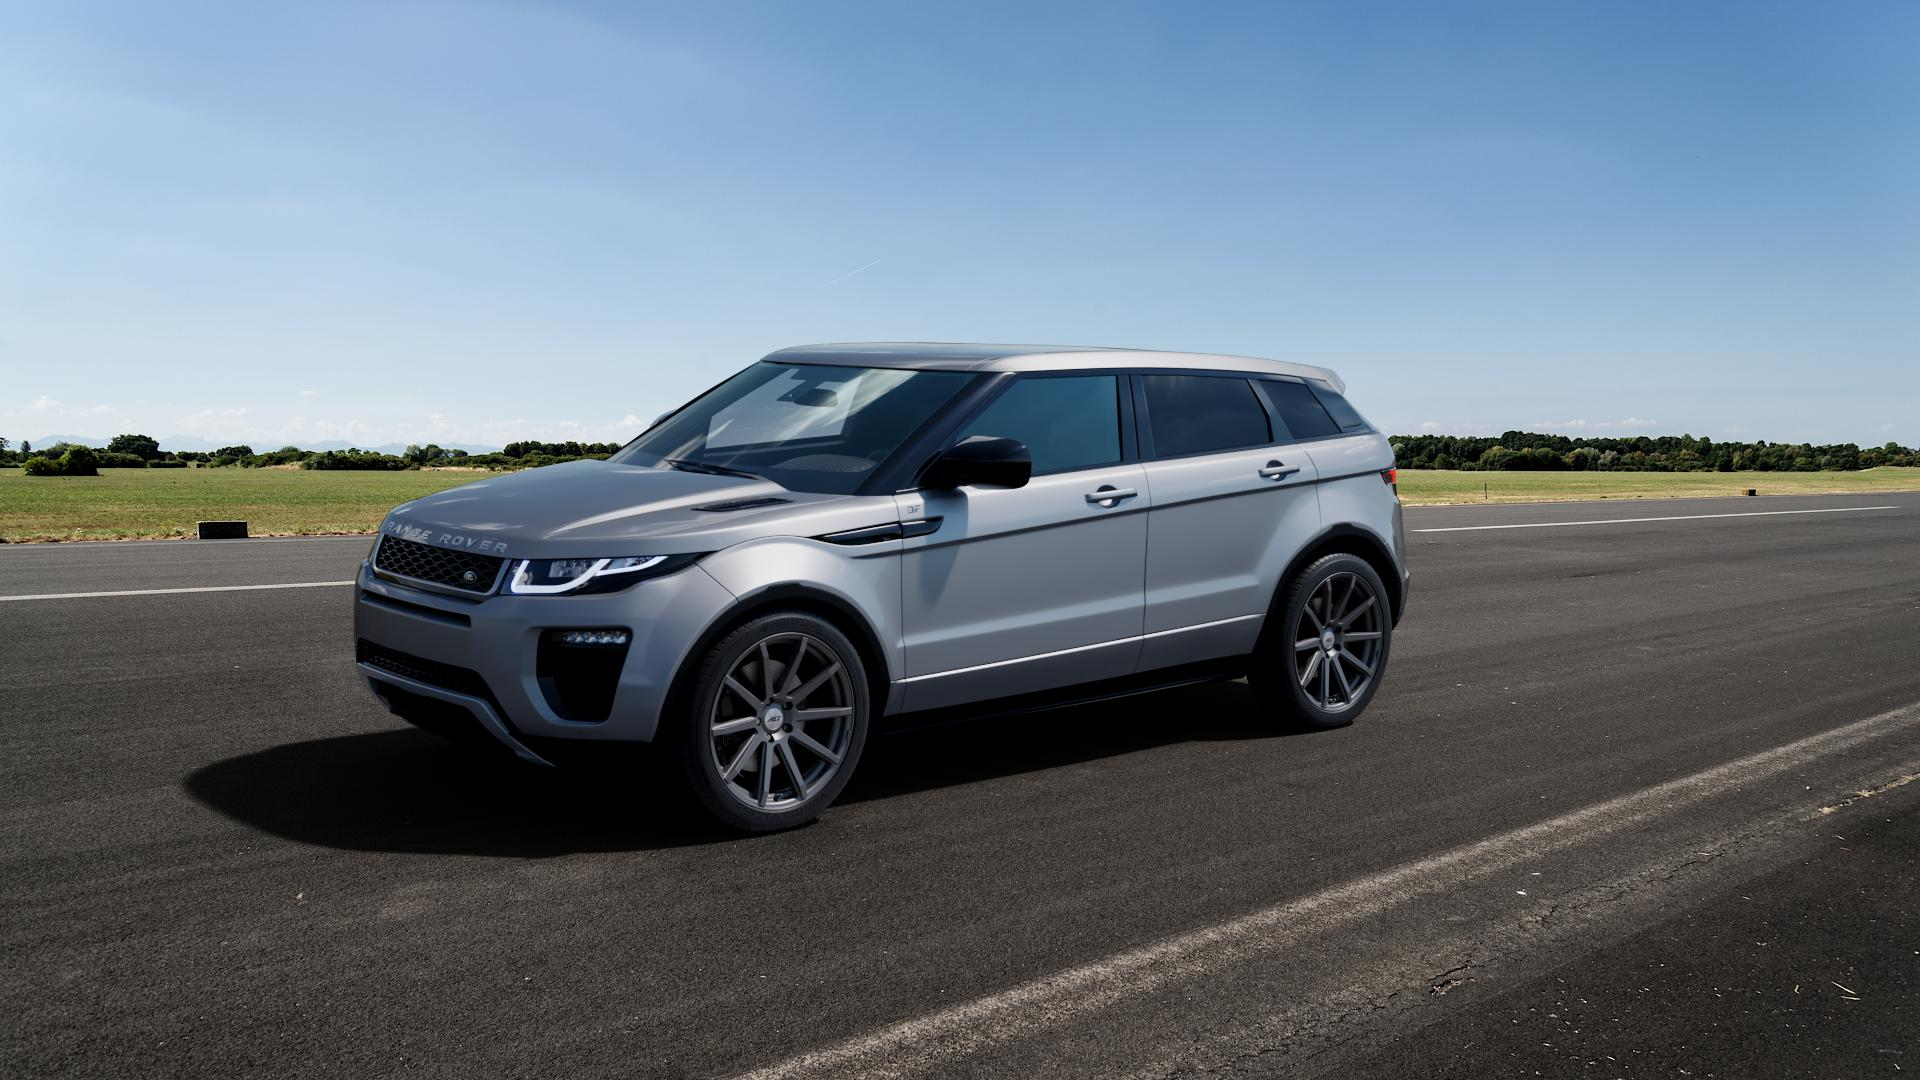 AEZ Straight Graphite matt Felge mit Reifen grau in 20Zoll Winterfelge Alufelge auf silbernem Land Rover Range Evoque Typ LV Facelift ⬇️ mit 15mm Tieferlegung ⬇️ Big_Vehicle_Airstrip_1 Frontansicht_1